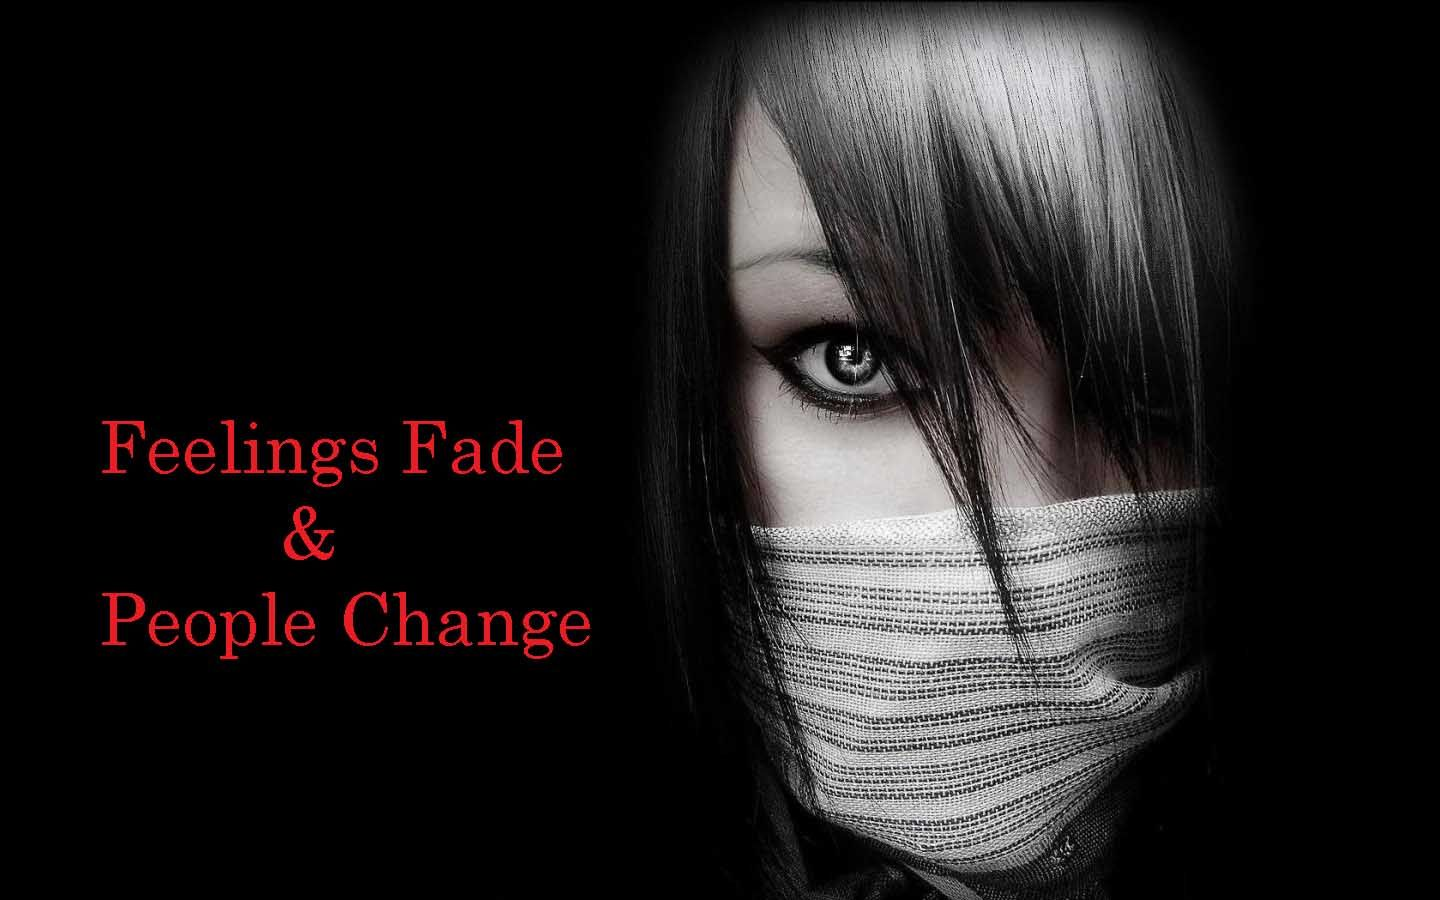 Hd wallpaper emo - Emo Quotes Emo Quotes Hd Wallpaper With Girl Projects To Try Pinterest